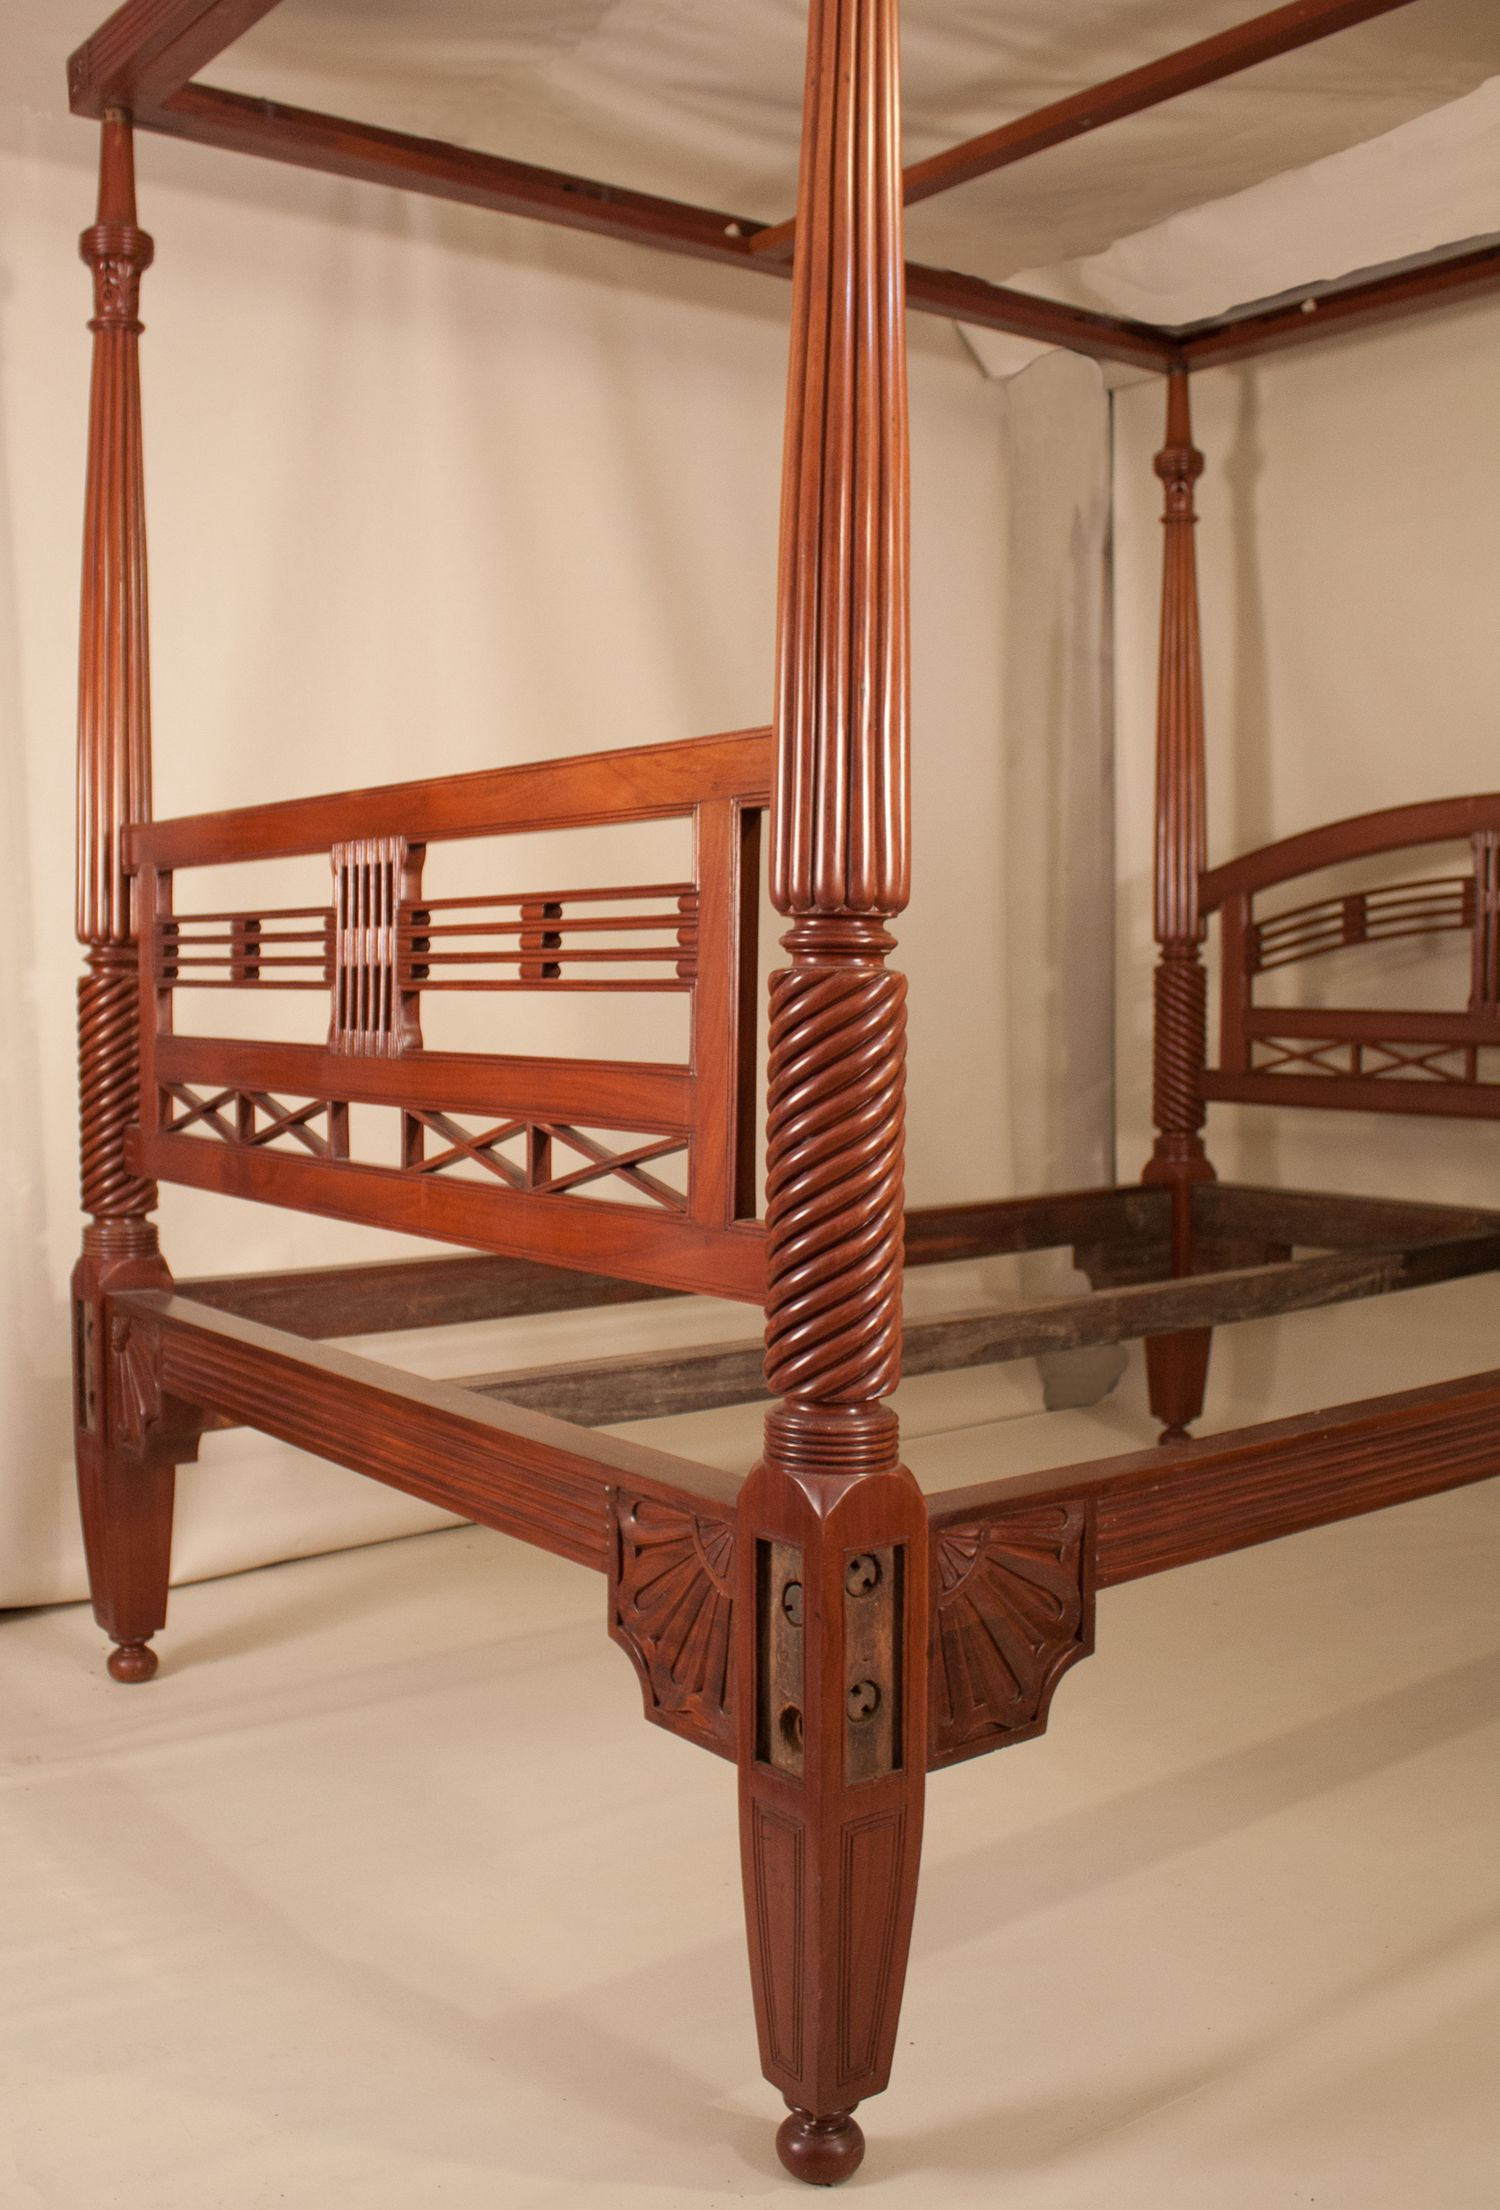 Antique British Colonial Mahogany Four Poster Queen Bed With Tester